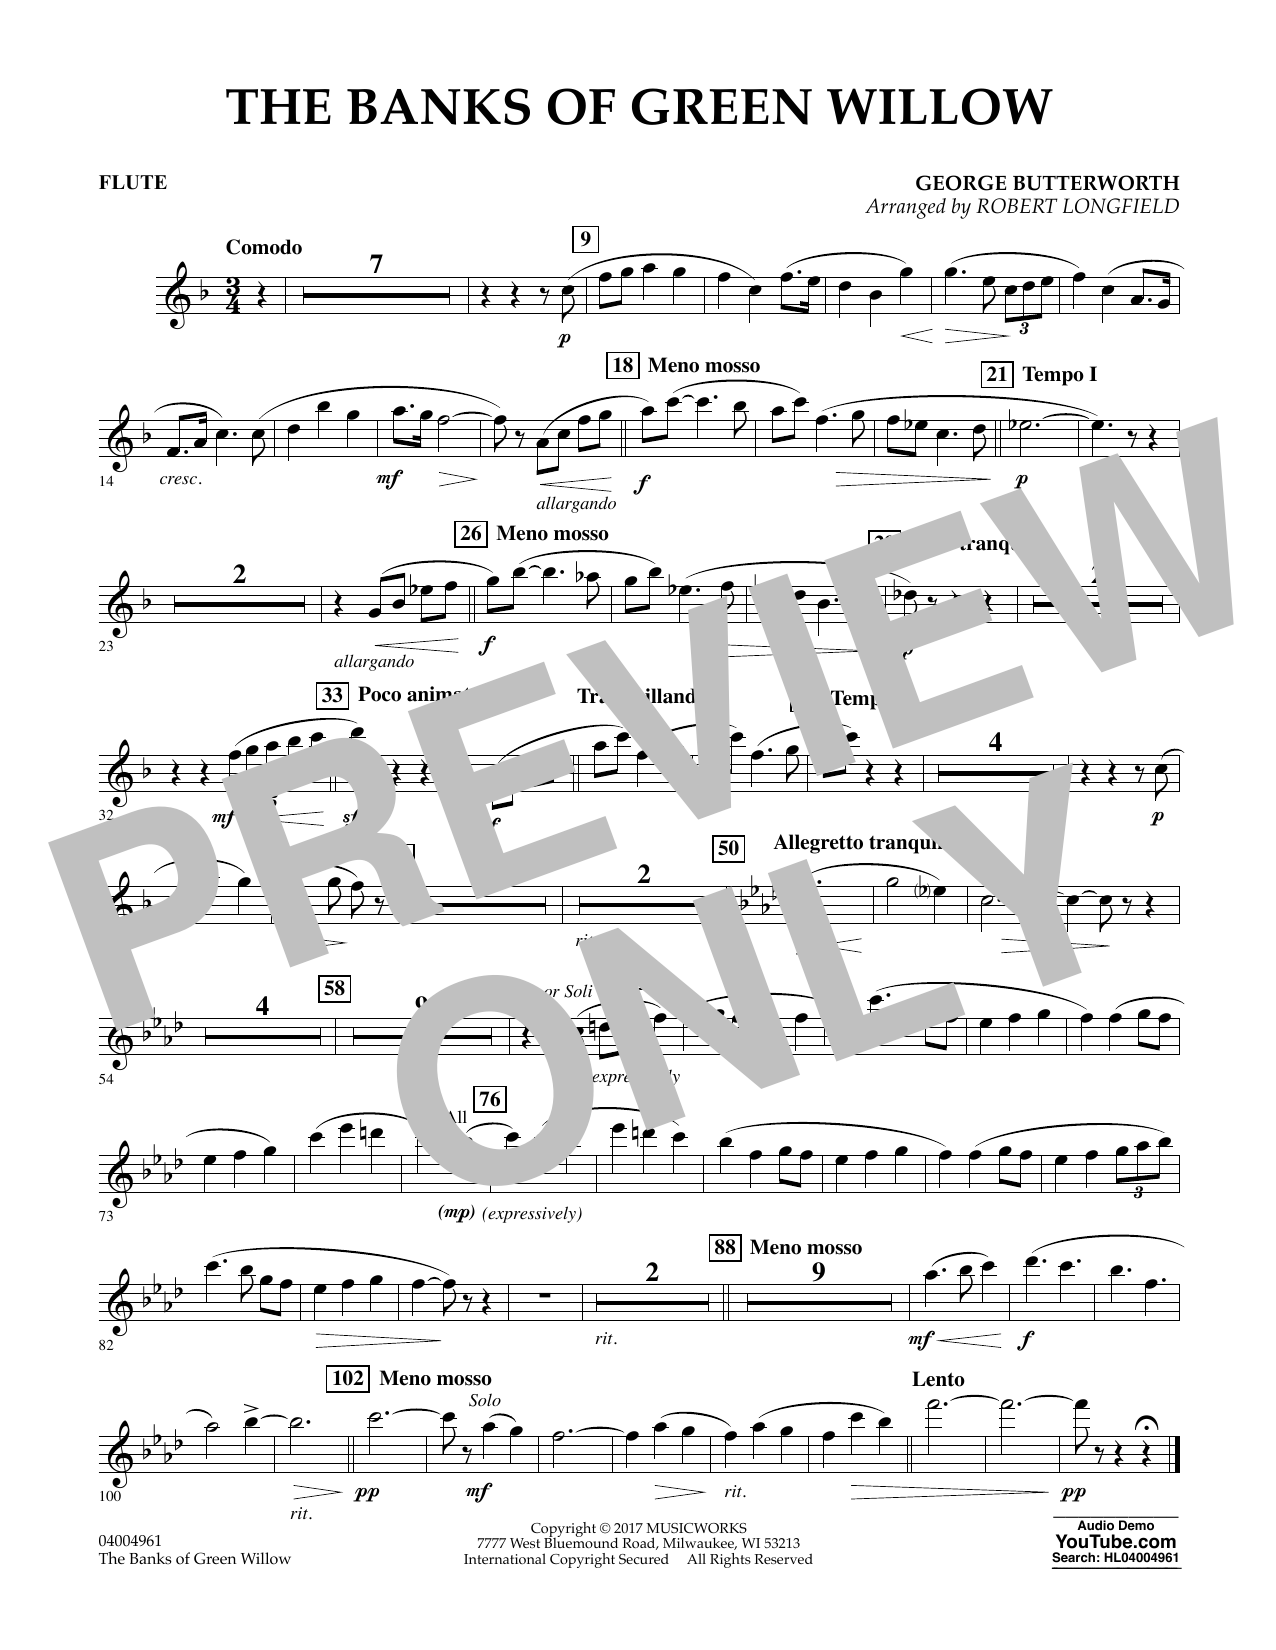 Robert Longfield The Banks of Green Willow - Flute sheet music notes and chords. Download Printable PDF.